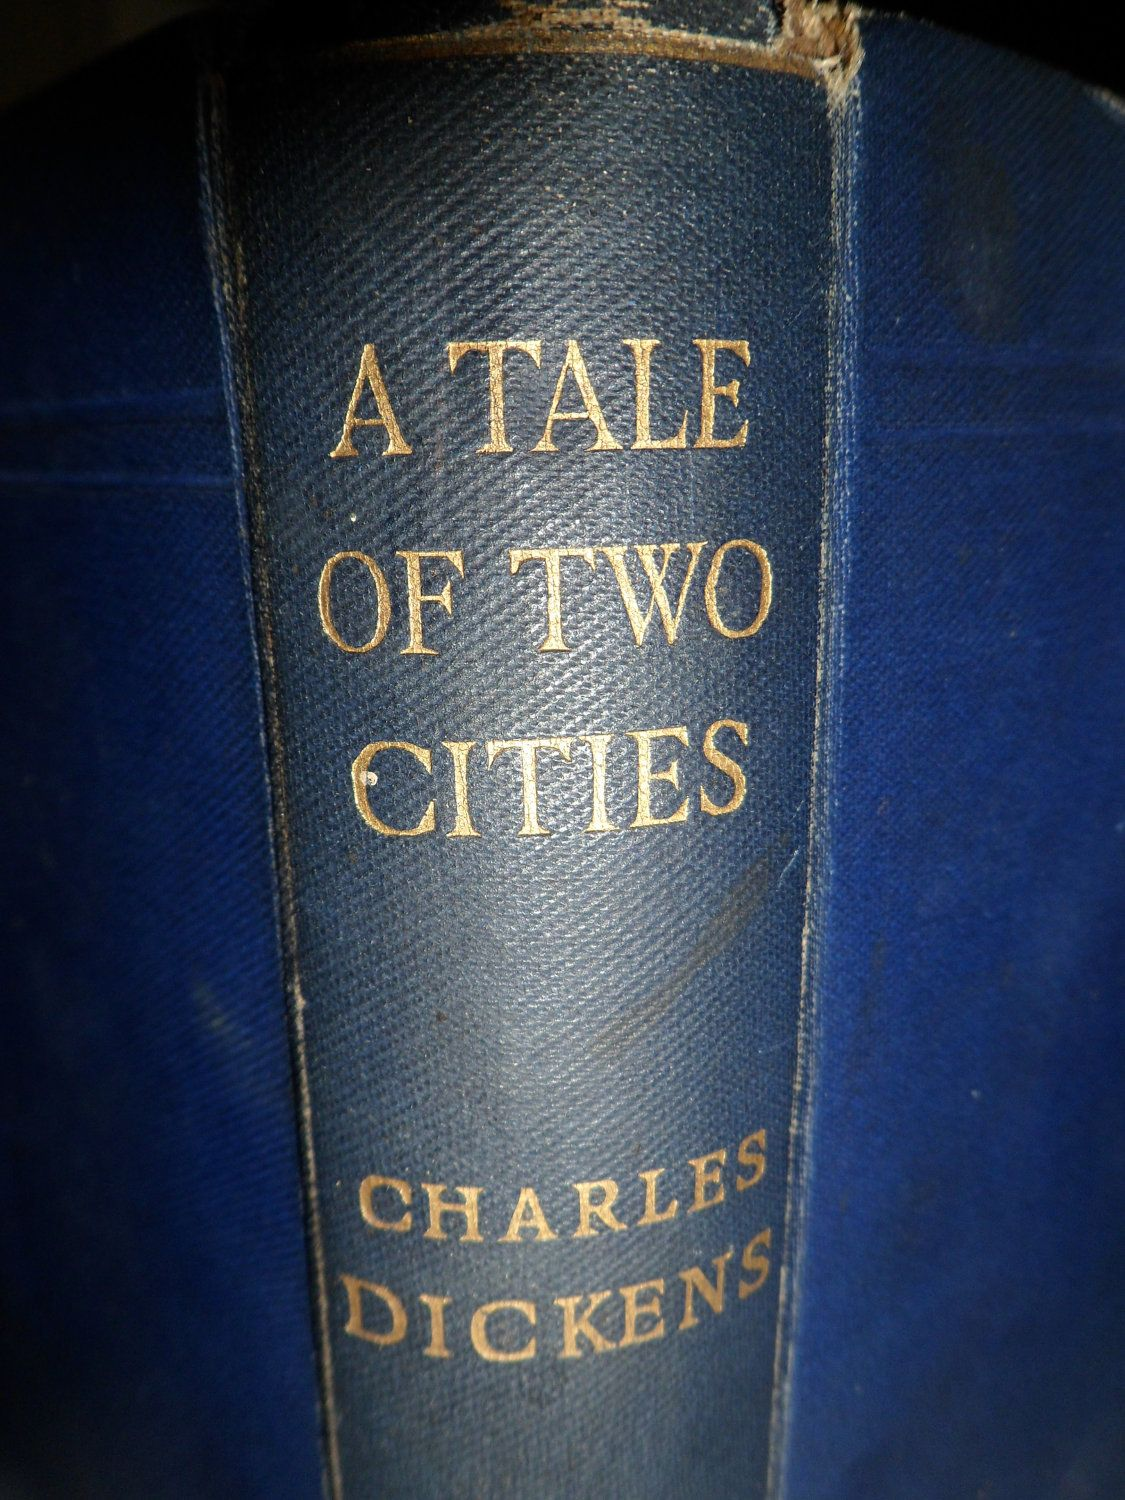 tale of two cities essay topics a tale of two cities by charles  images about a tale of two cities english 1000 images about a tale of two cities critical essay topics